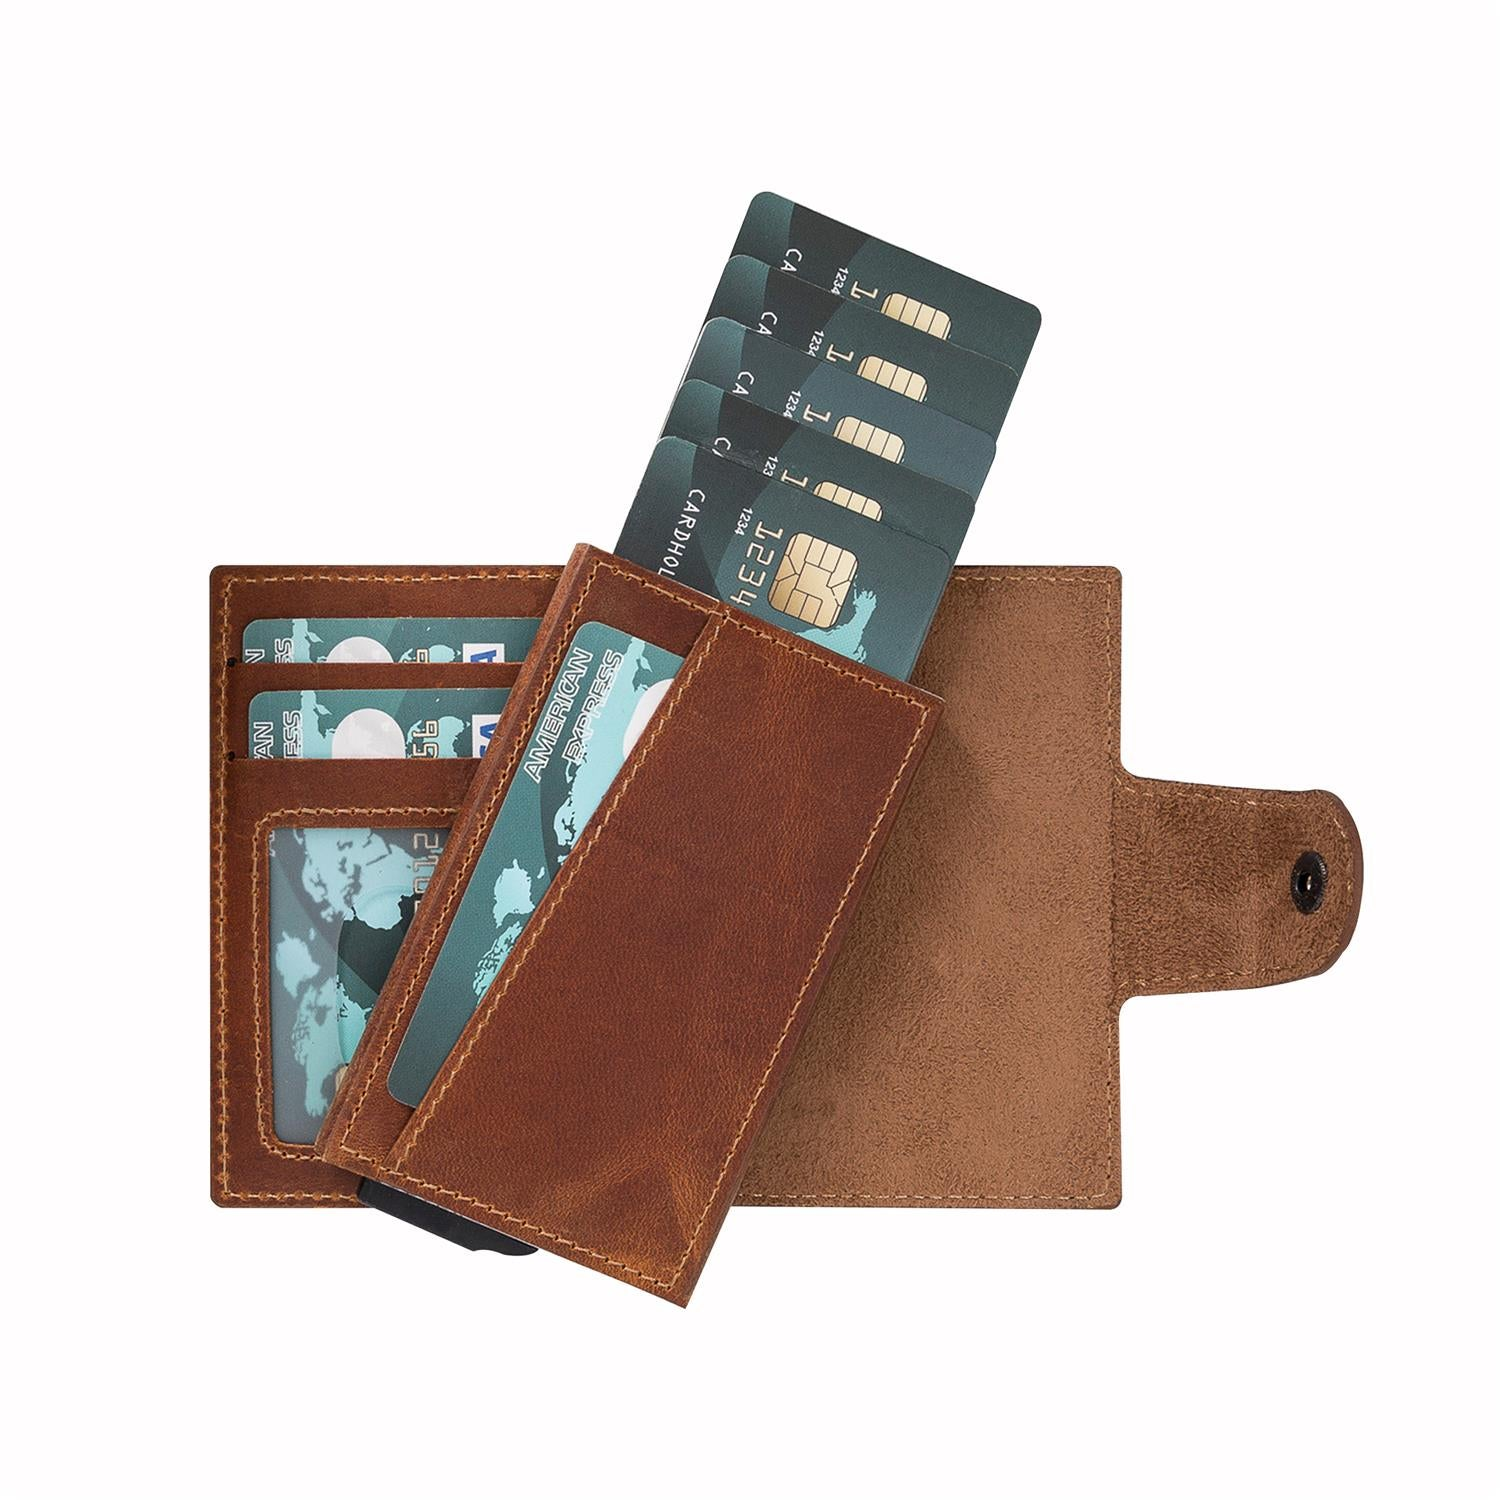 Mondello RFID Blocker Mechanism Pop Up Leather Wallet - TAN - saracleather